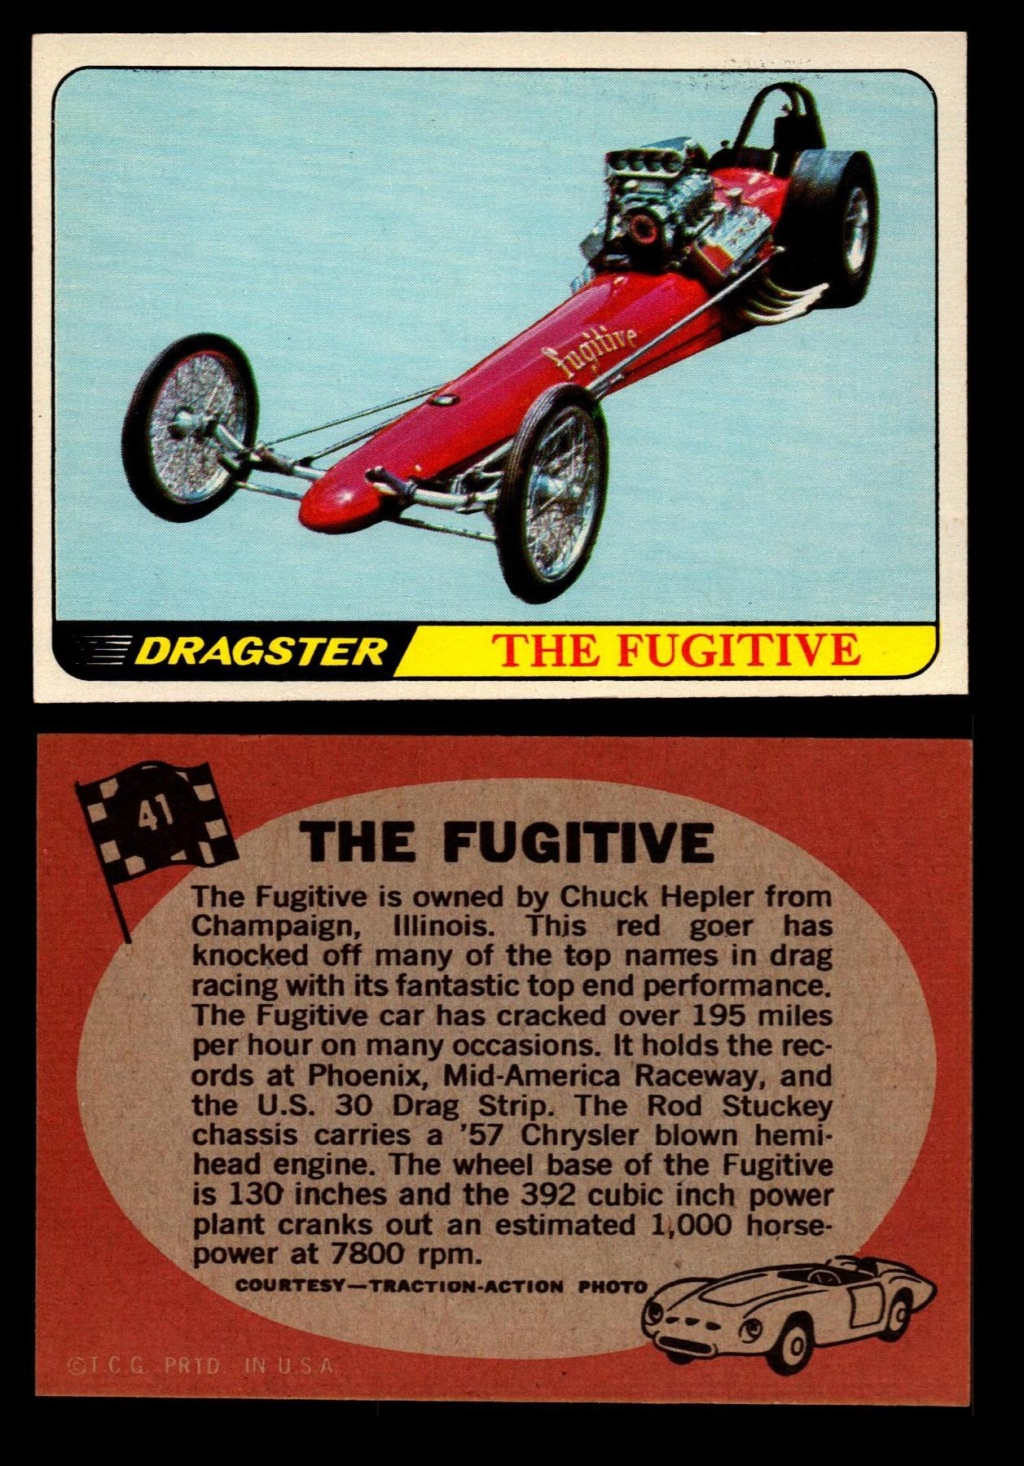 Hot Rods Topps - Vintage Trading Cards 1968 - Custom car - Dragster - Racer - Dream car - Barris Kustom City - Ed Roth Darrill Starbird, Gene Winfield, Bill Cuchenberry - Page 2 41_dc110